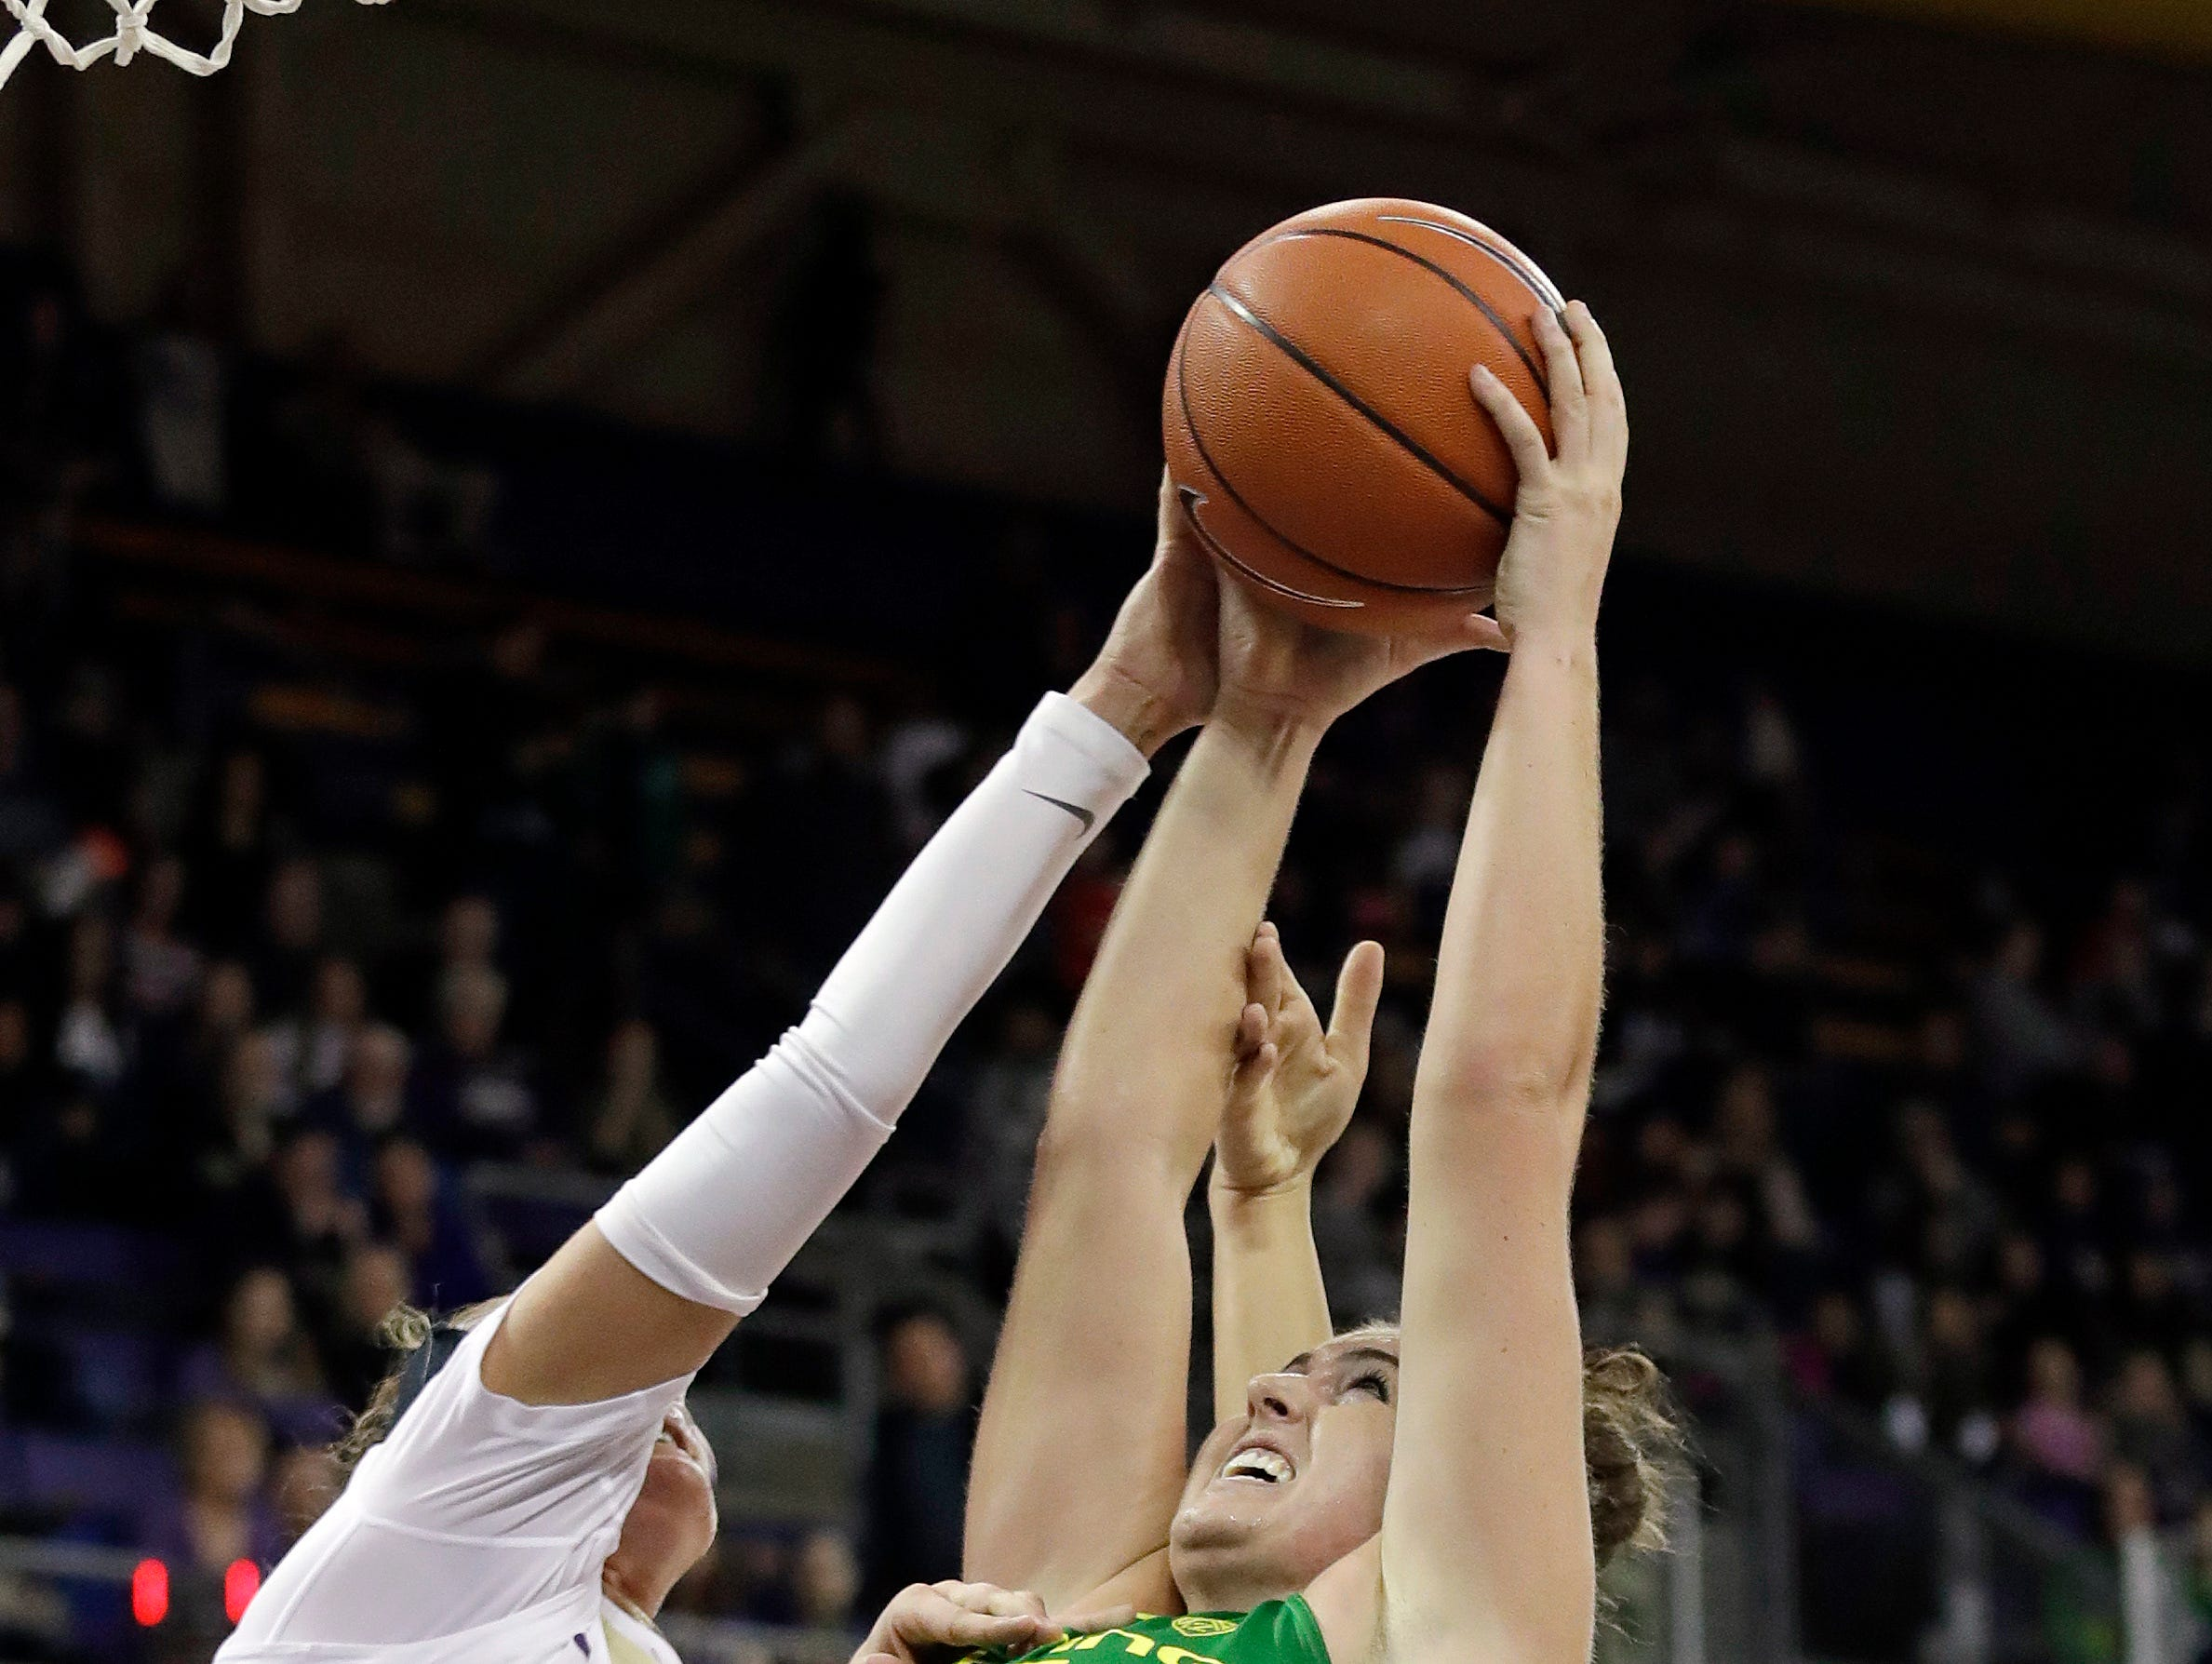 Oregon's Erin Boley (21) grabs a rebound in front of Washington's Missy Peterson (44) and Montana Hagstrom in the second half of an NCAA college basketball game Sunday, Jan. 27, 2019, in Seattle.